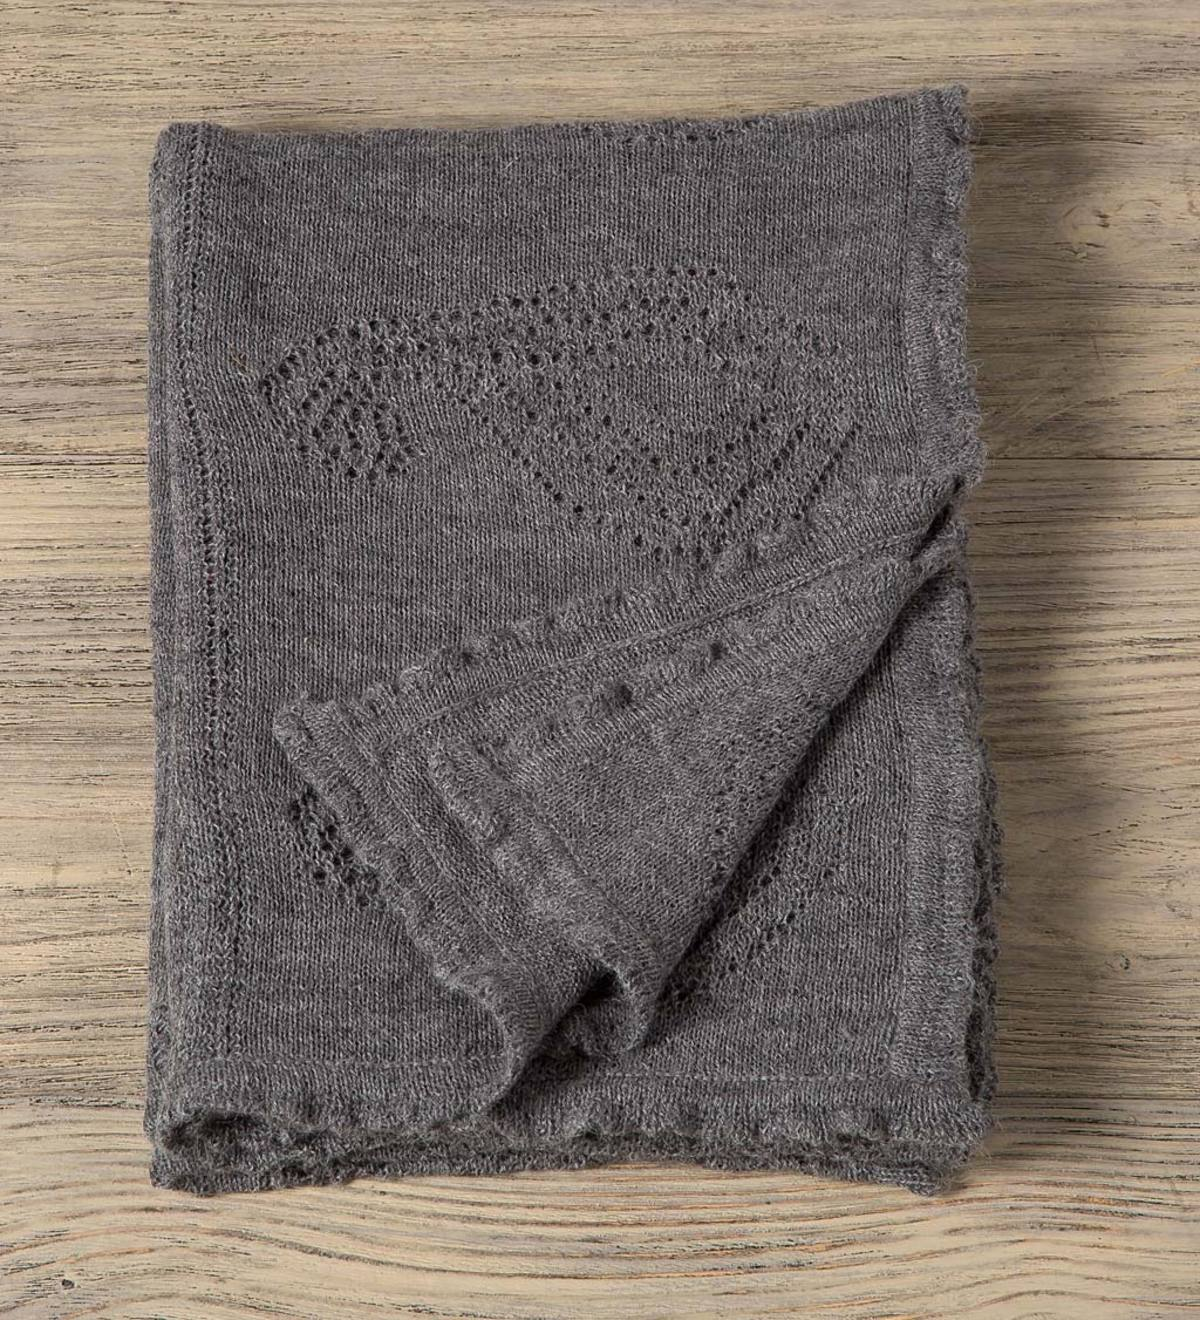 "Baby Alpaca Throw, 47"" x 70"" - Gray"